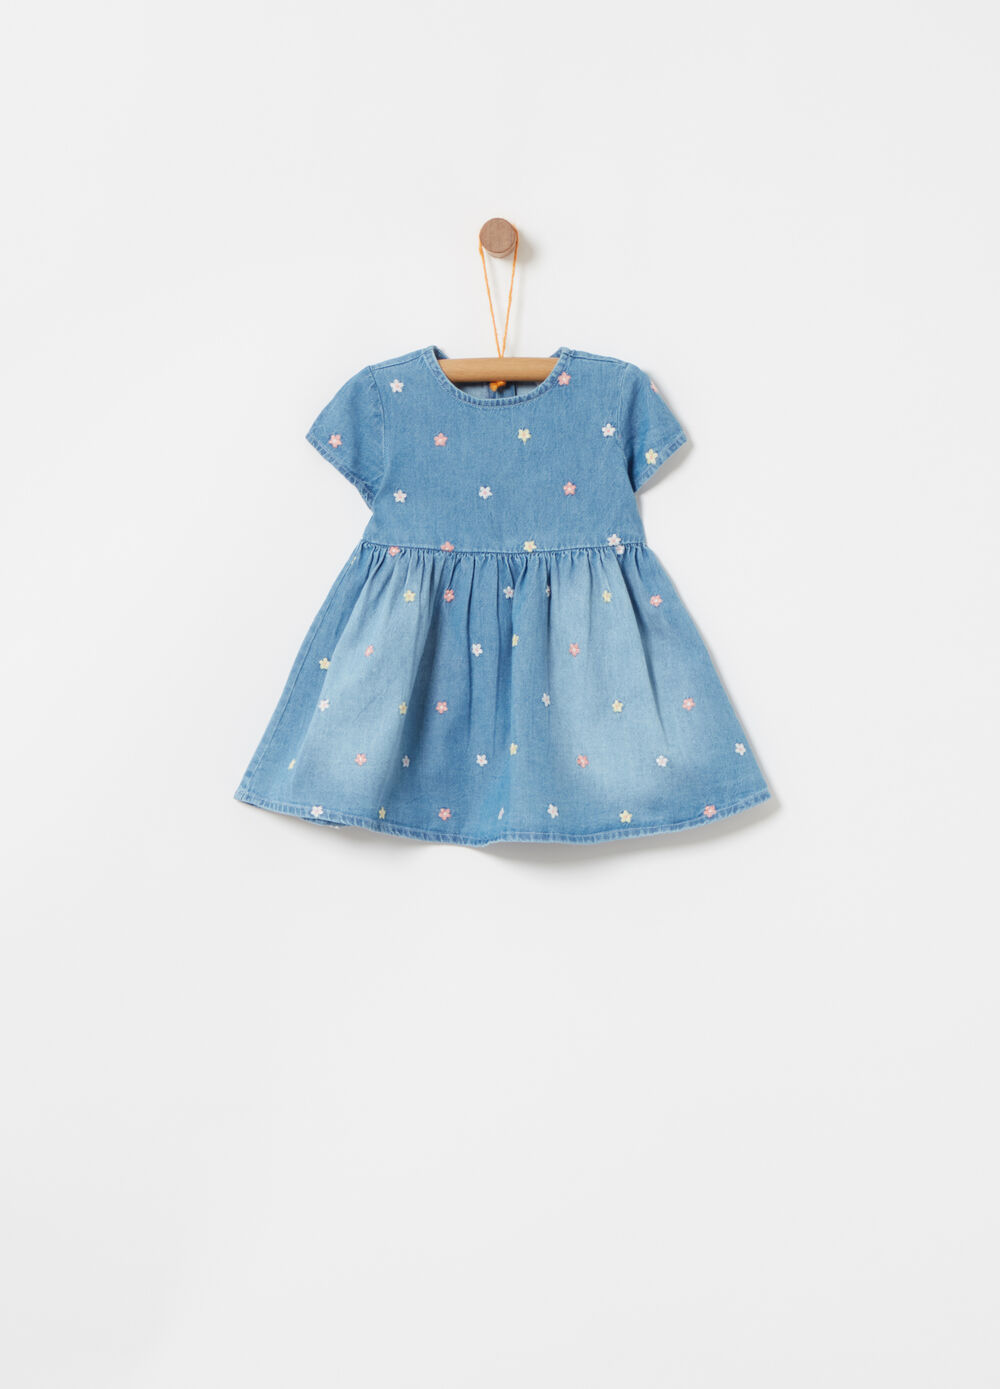 Washed denim dress with embroidery